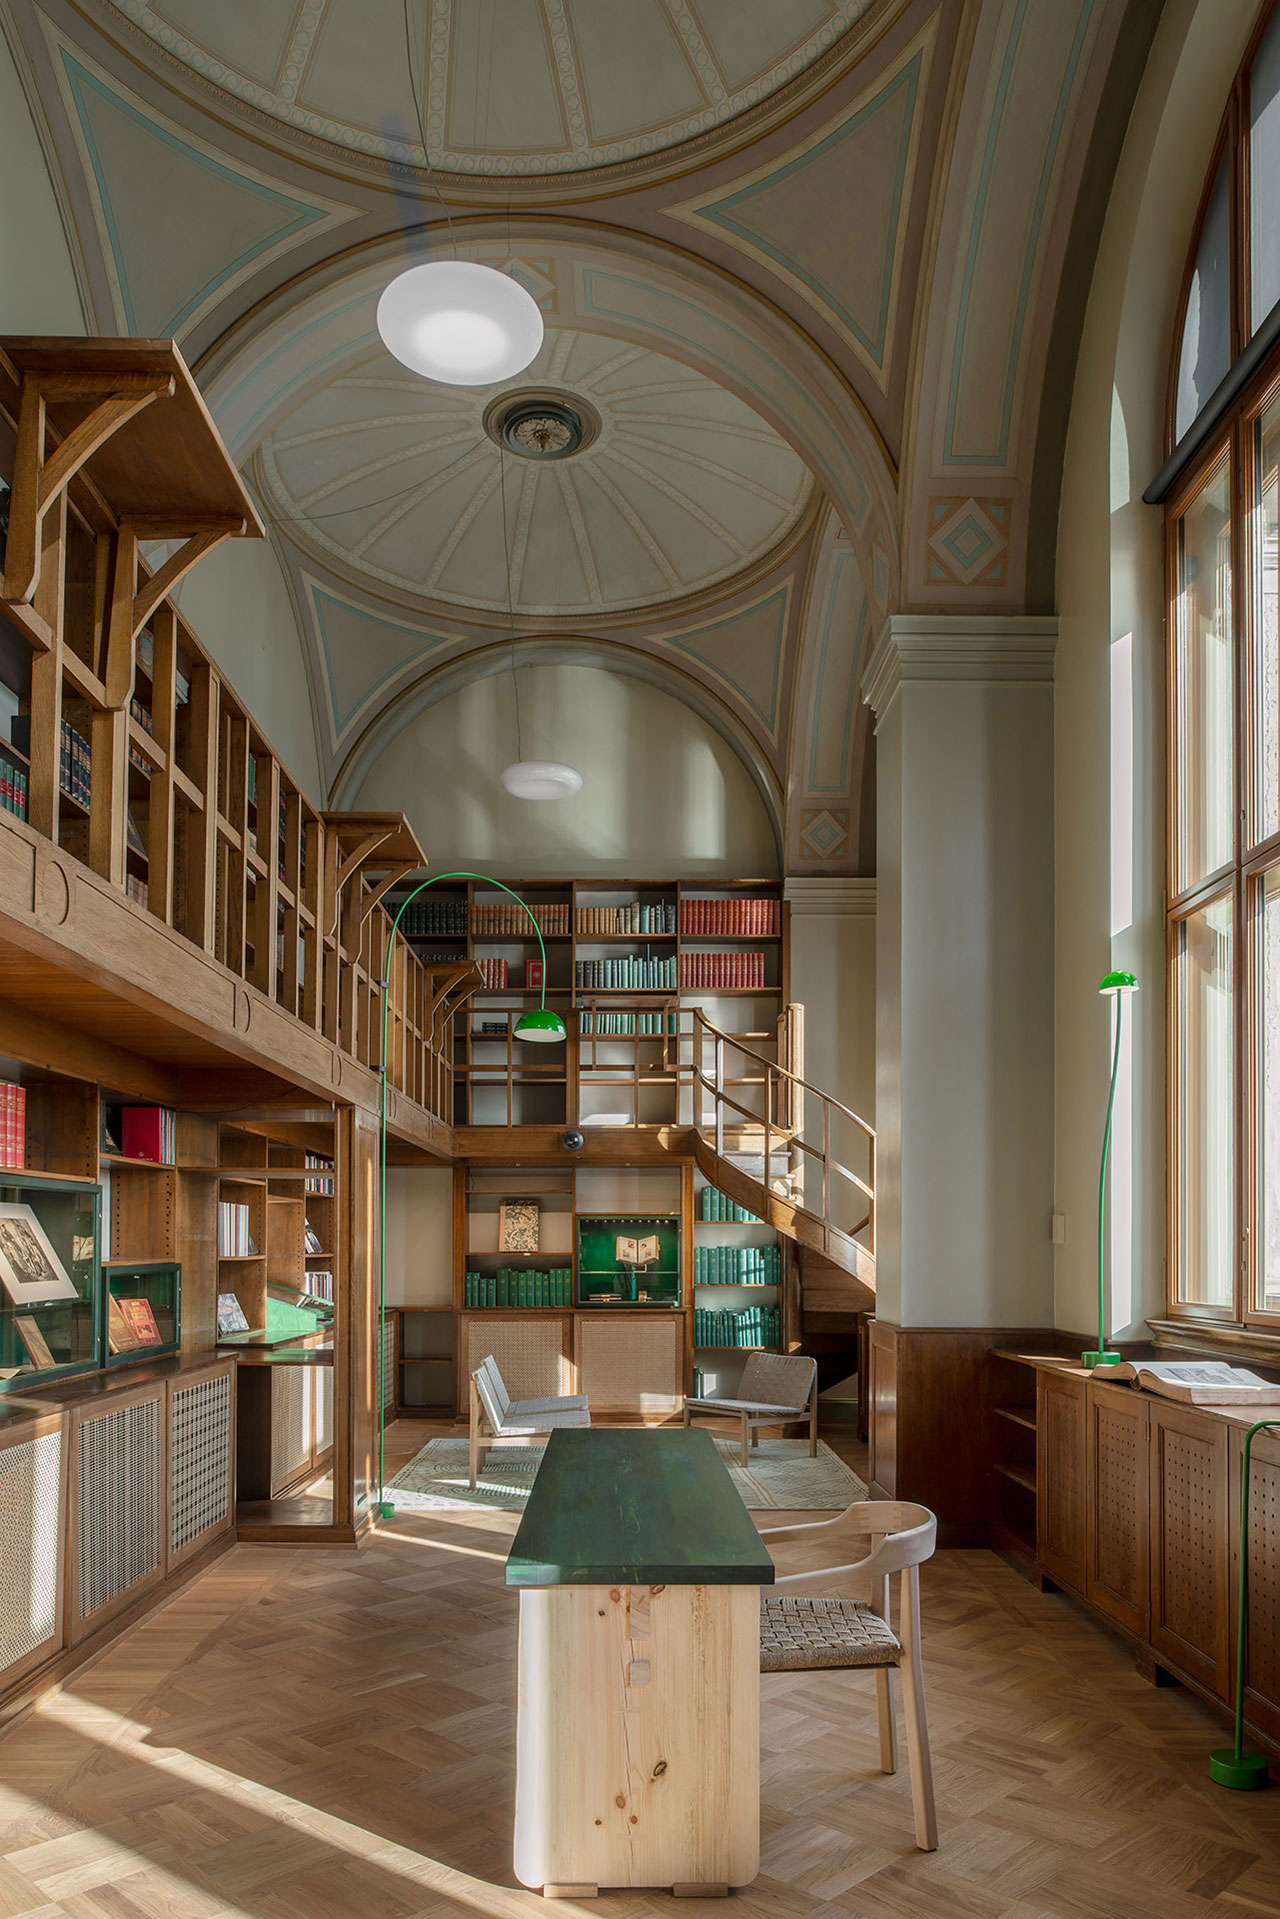 Nationalmuseum Old Library, interior design by Emma Olbers. Photo by Andy Liffner.